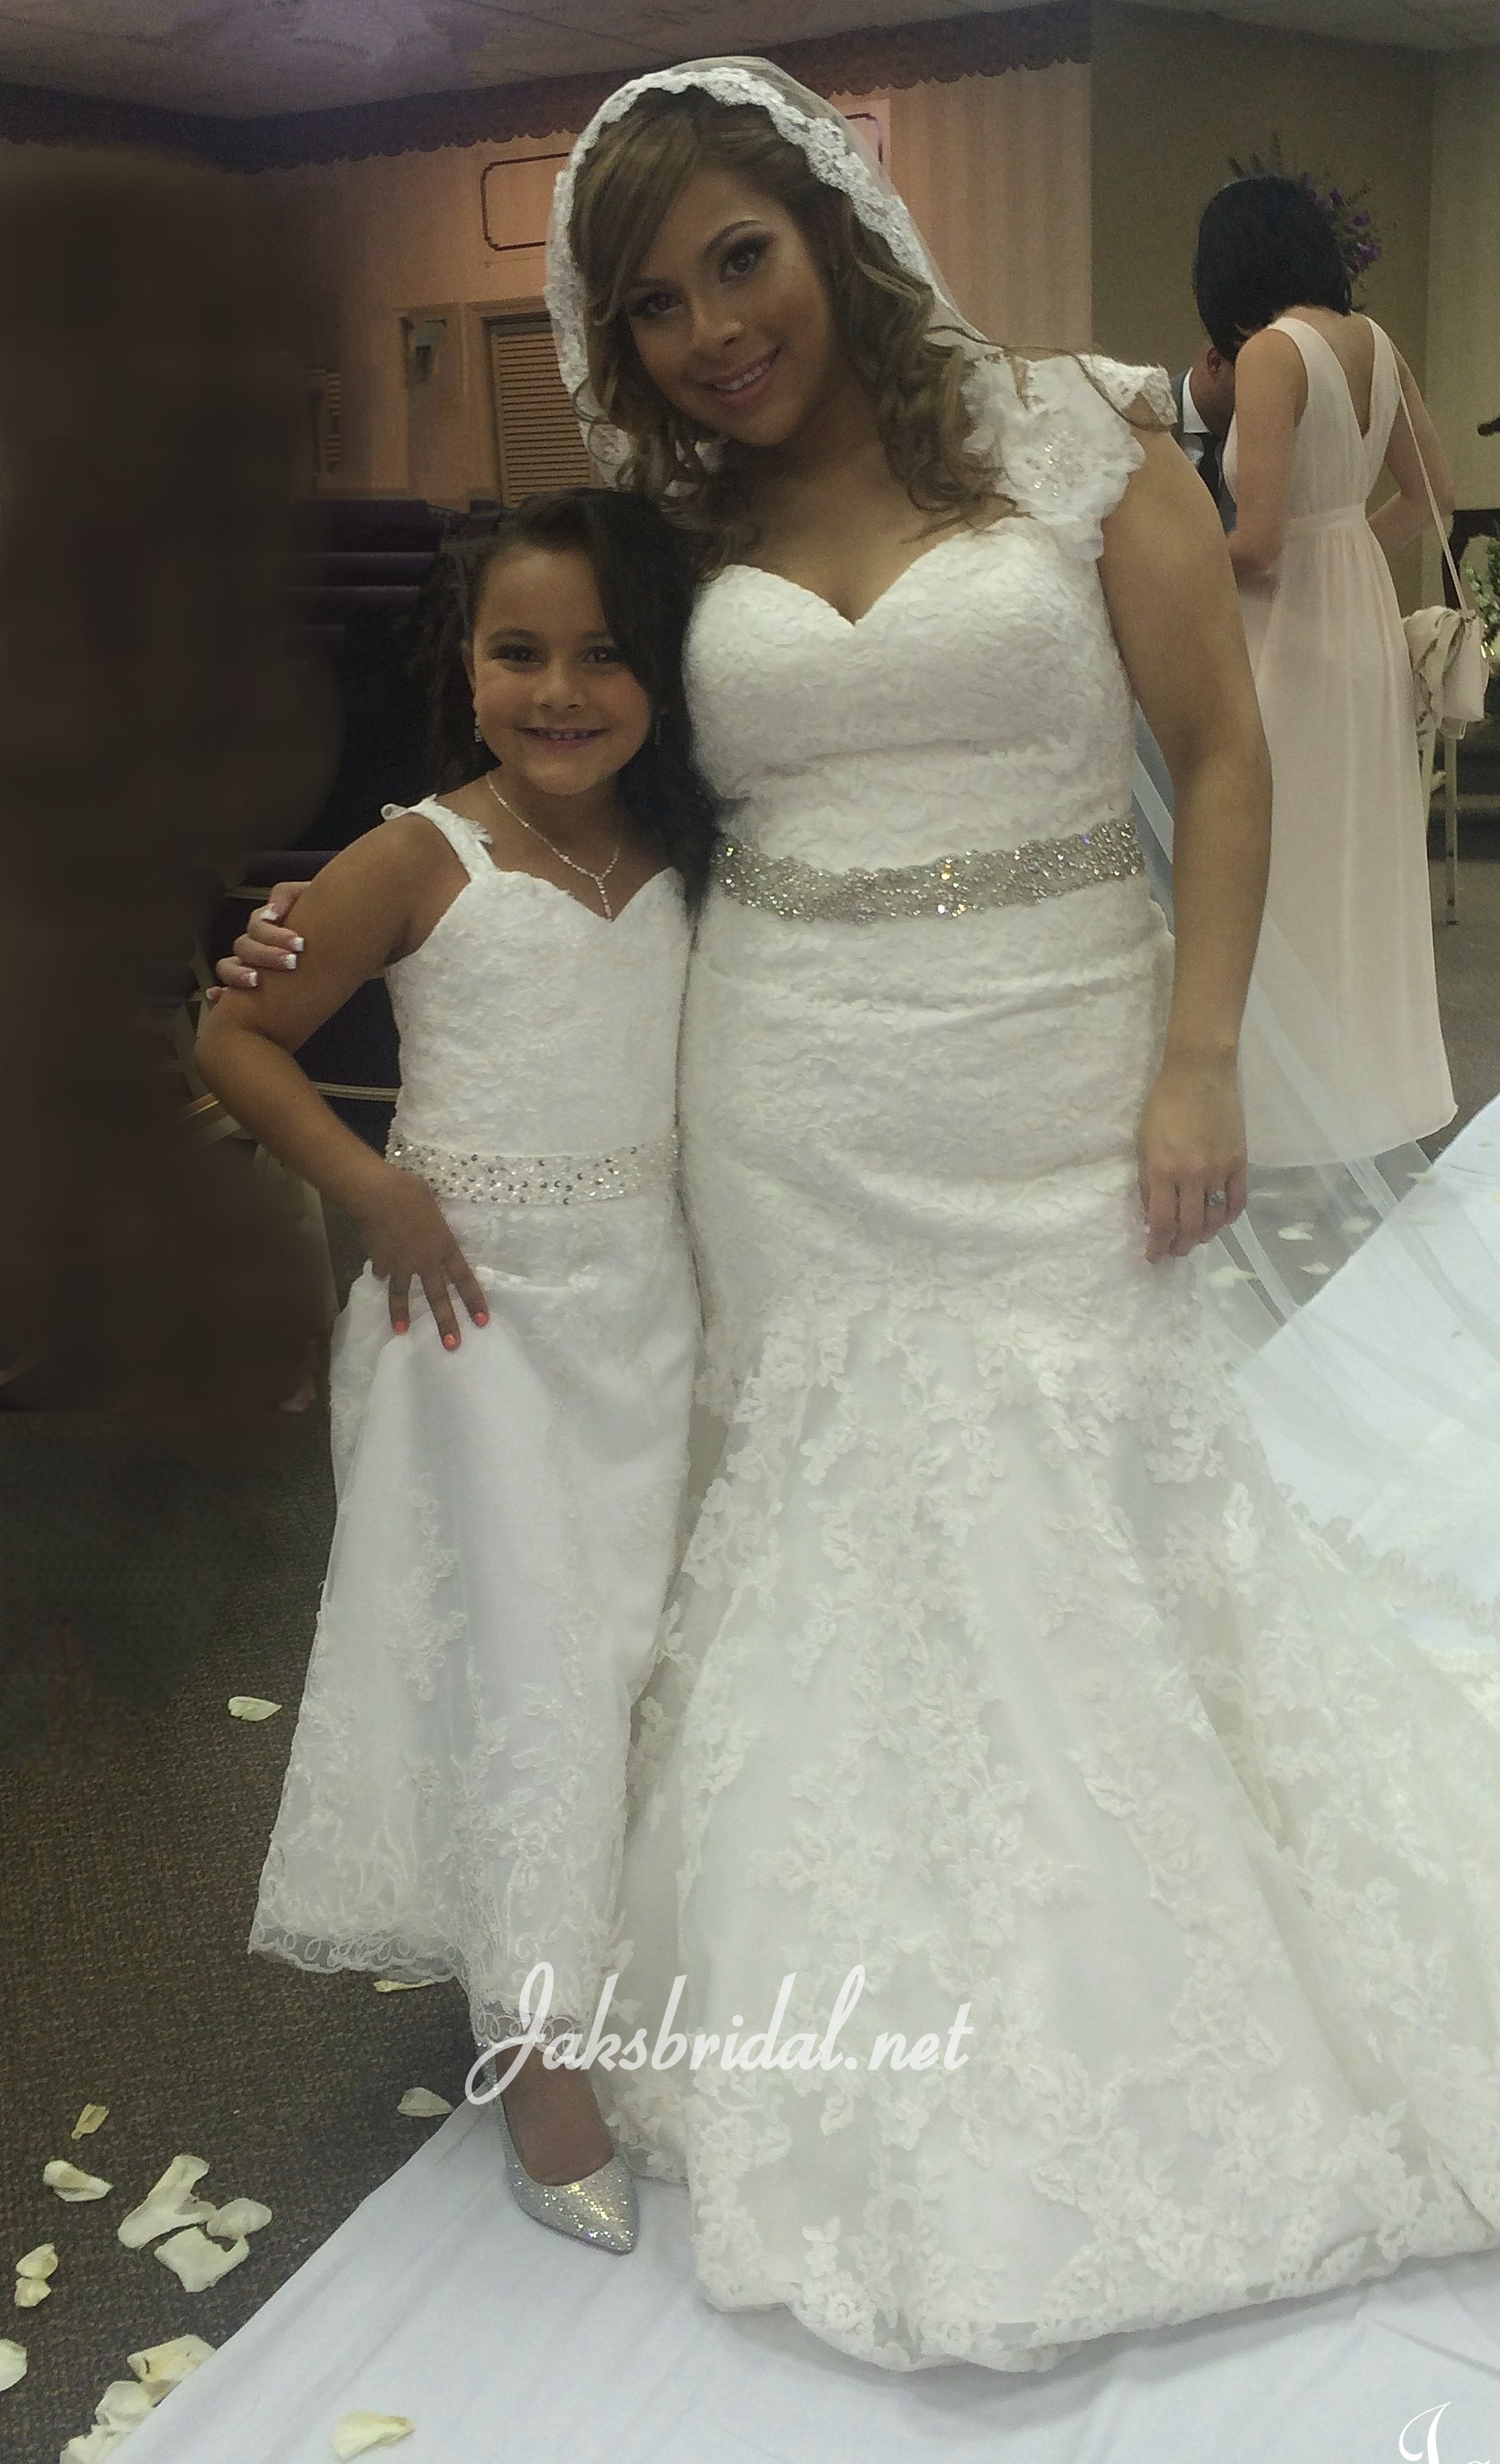 Matching Flower Girl Dresses to Bridal Gowns